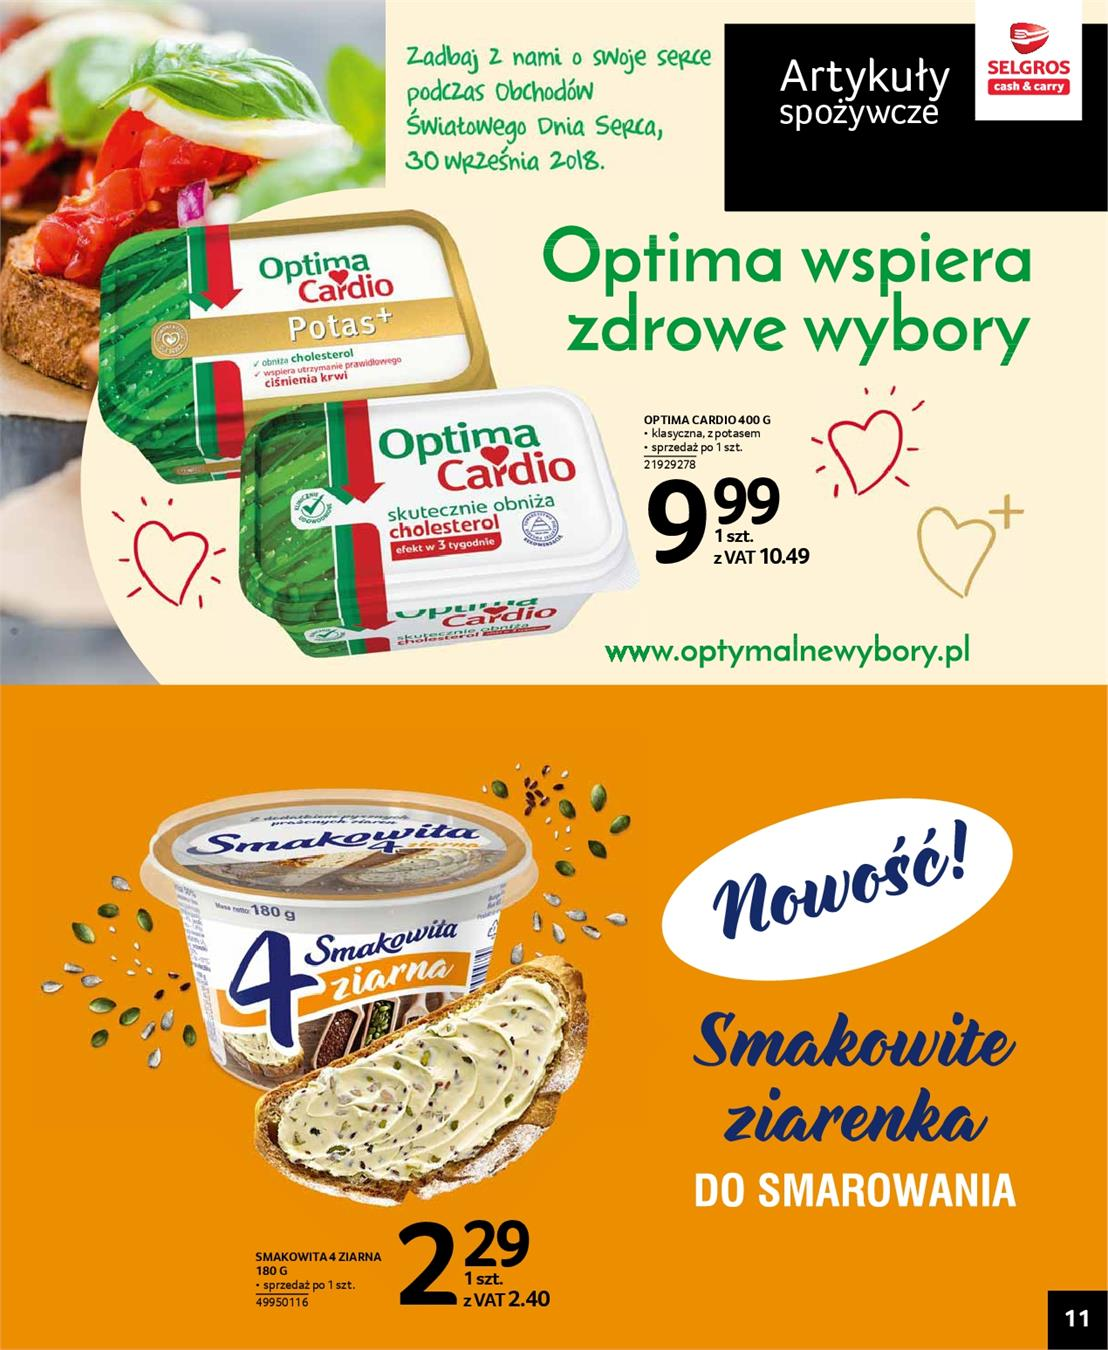 Gazetka Selgros Sp. z o.o. nr 11 od 2018-09-27 do 2018-10-10